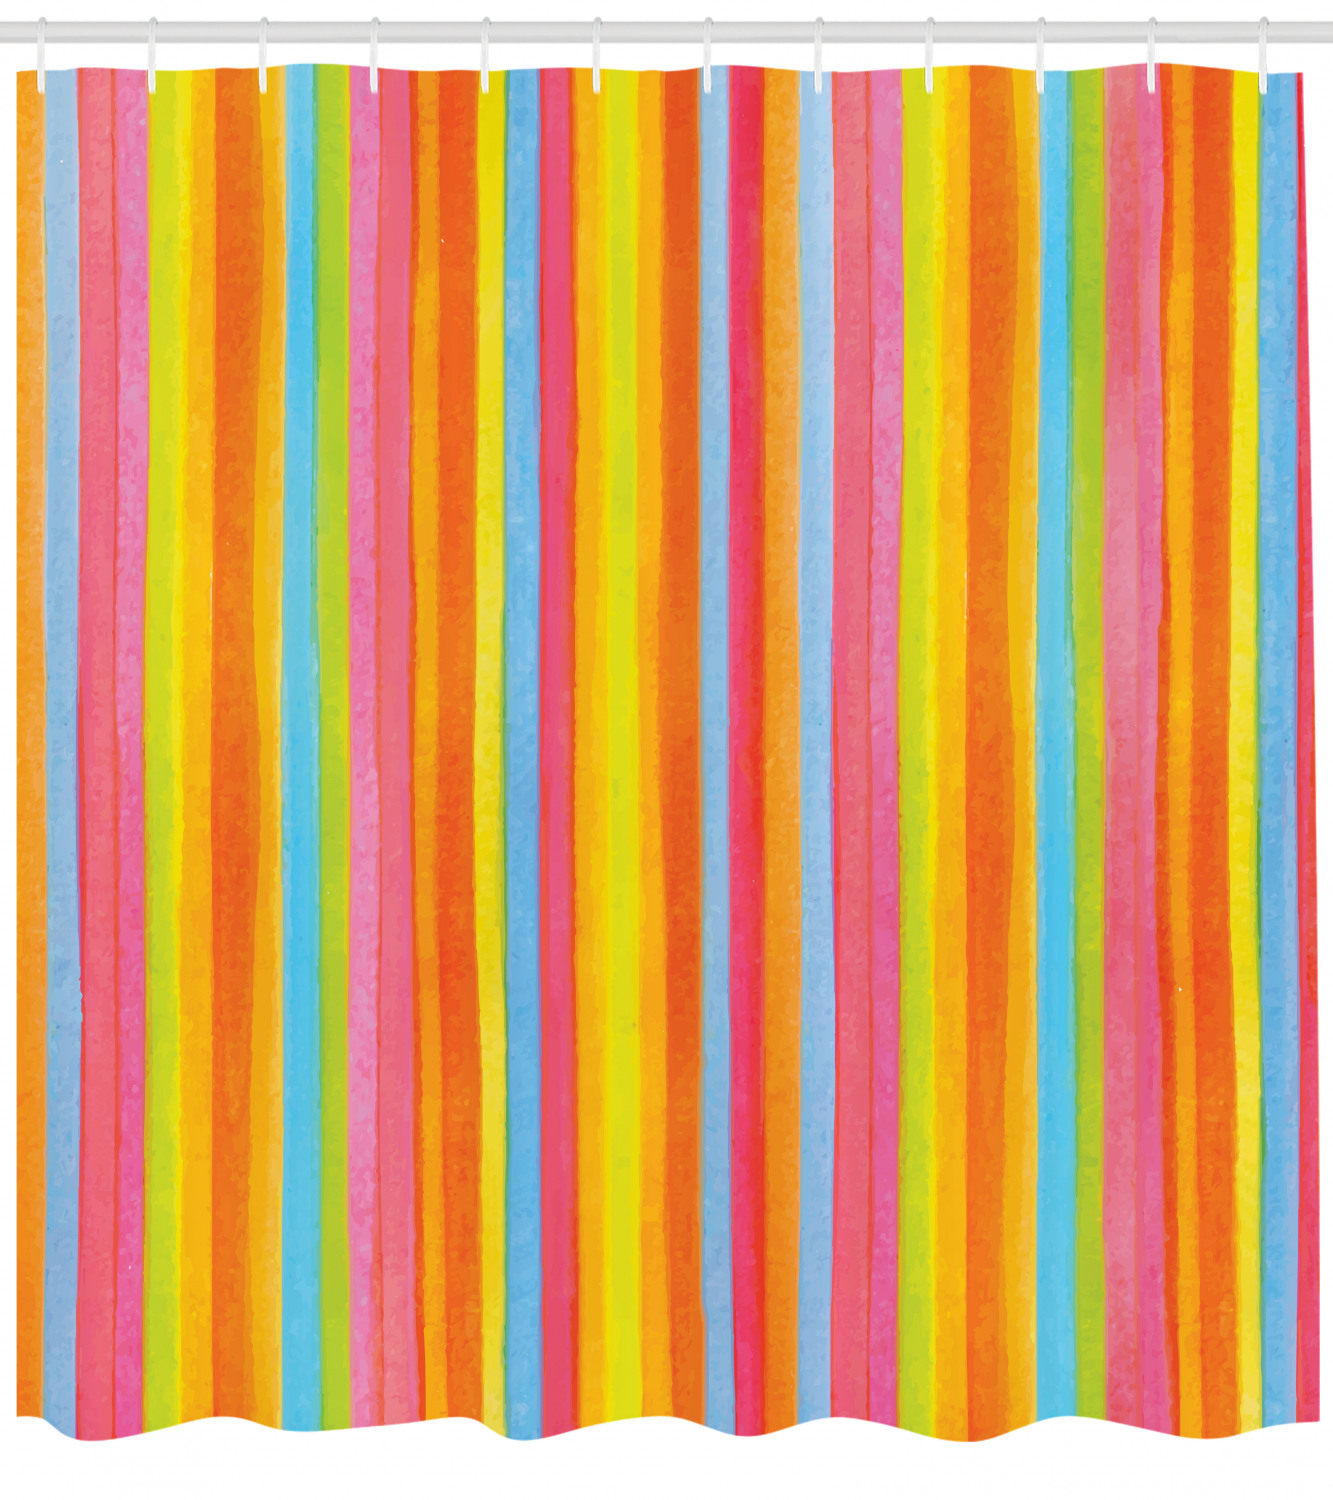 Striped Shower Curtain Vertical Stripes In Lively Rainbow Colors And Modern Aquarelle Design Geometric Fabric Bathroom Set With Hooks 69w X 75l